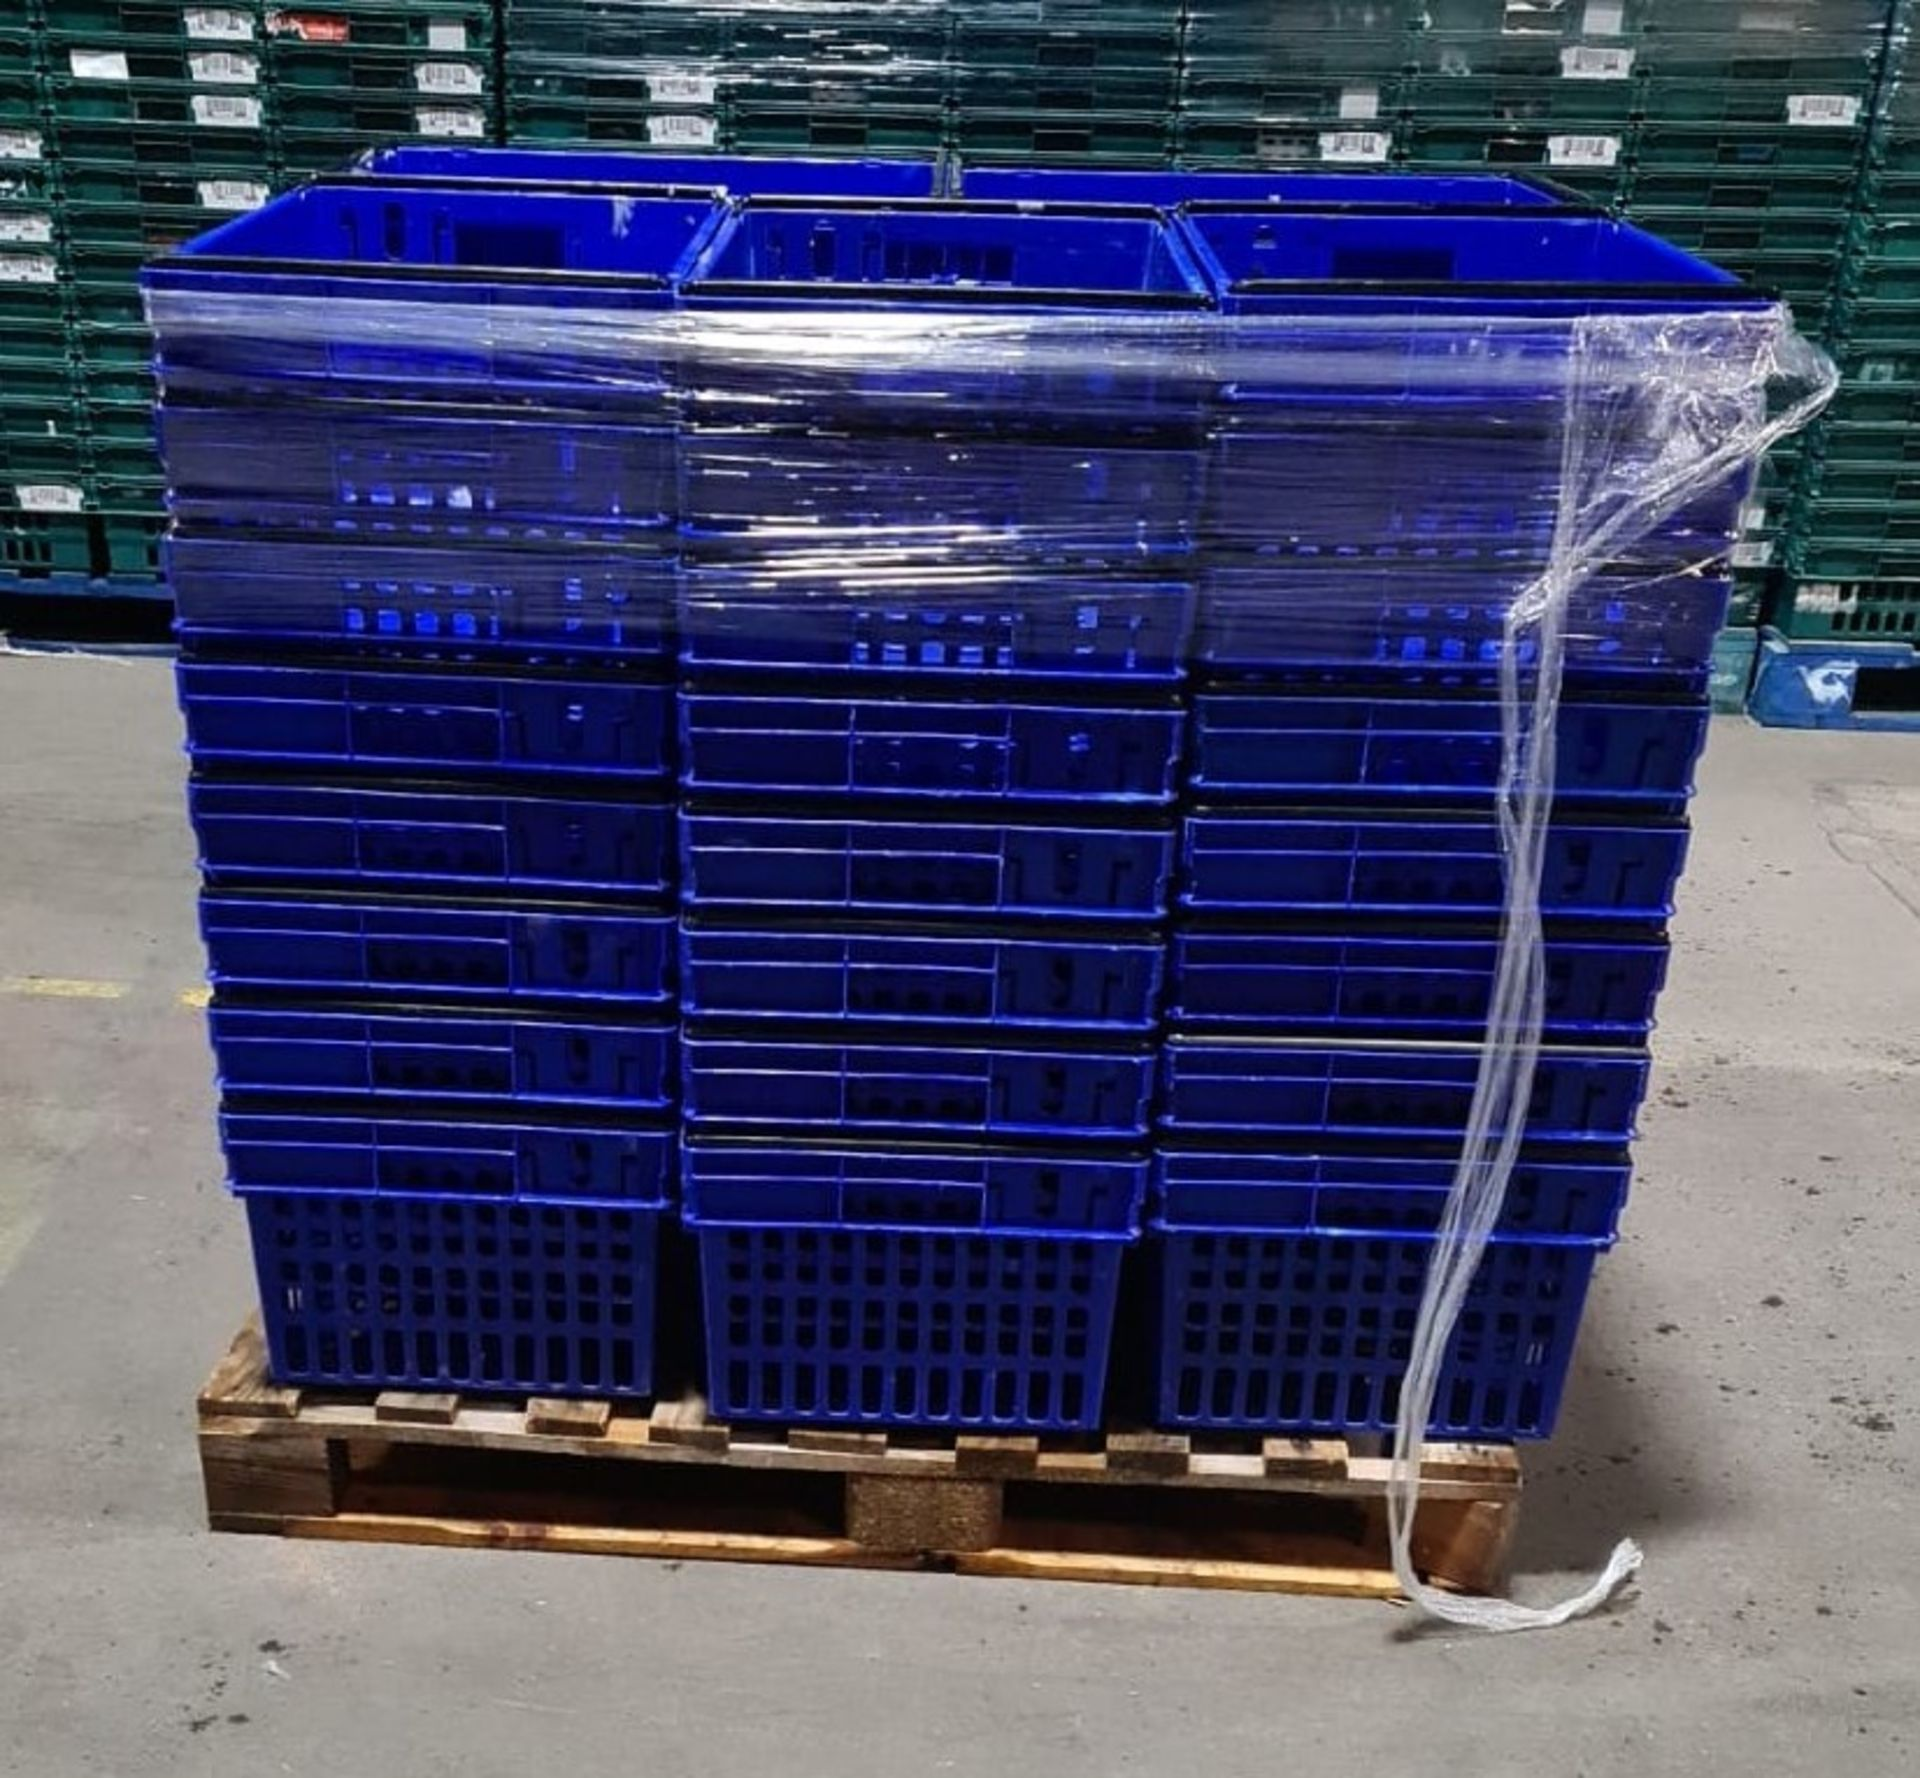 Pallet of 40 x 55Ltr Ventilated stacking & nesting crates from M&S. - Image 4 of 4